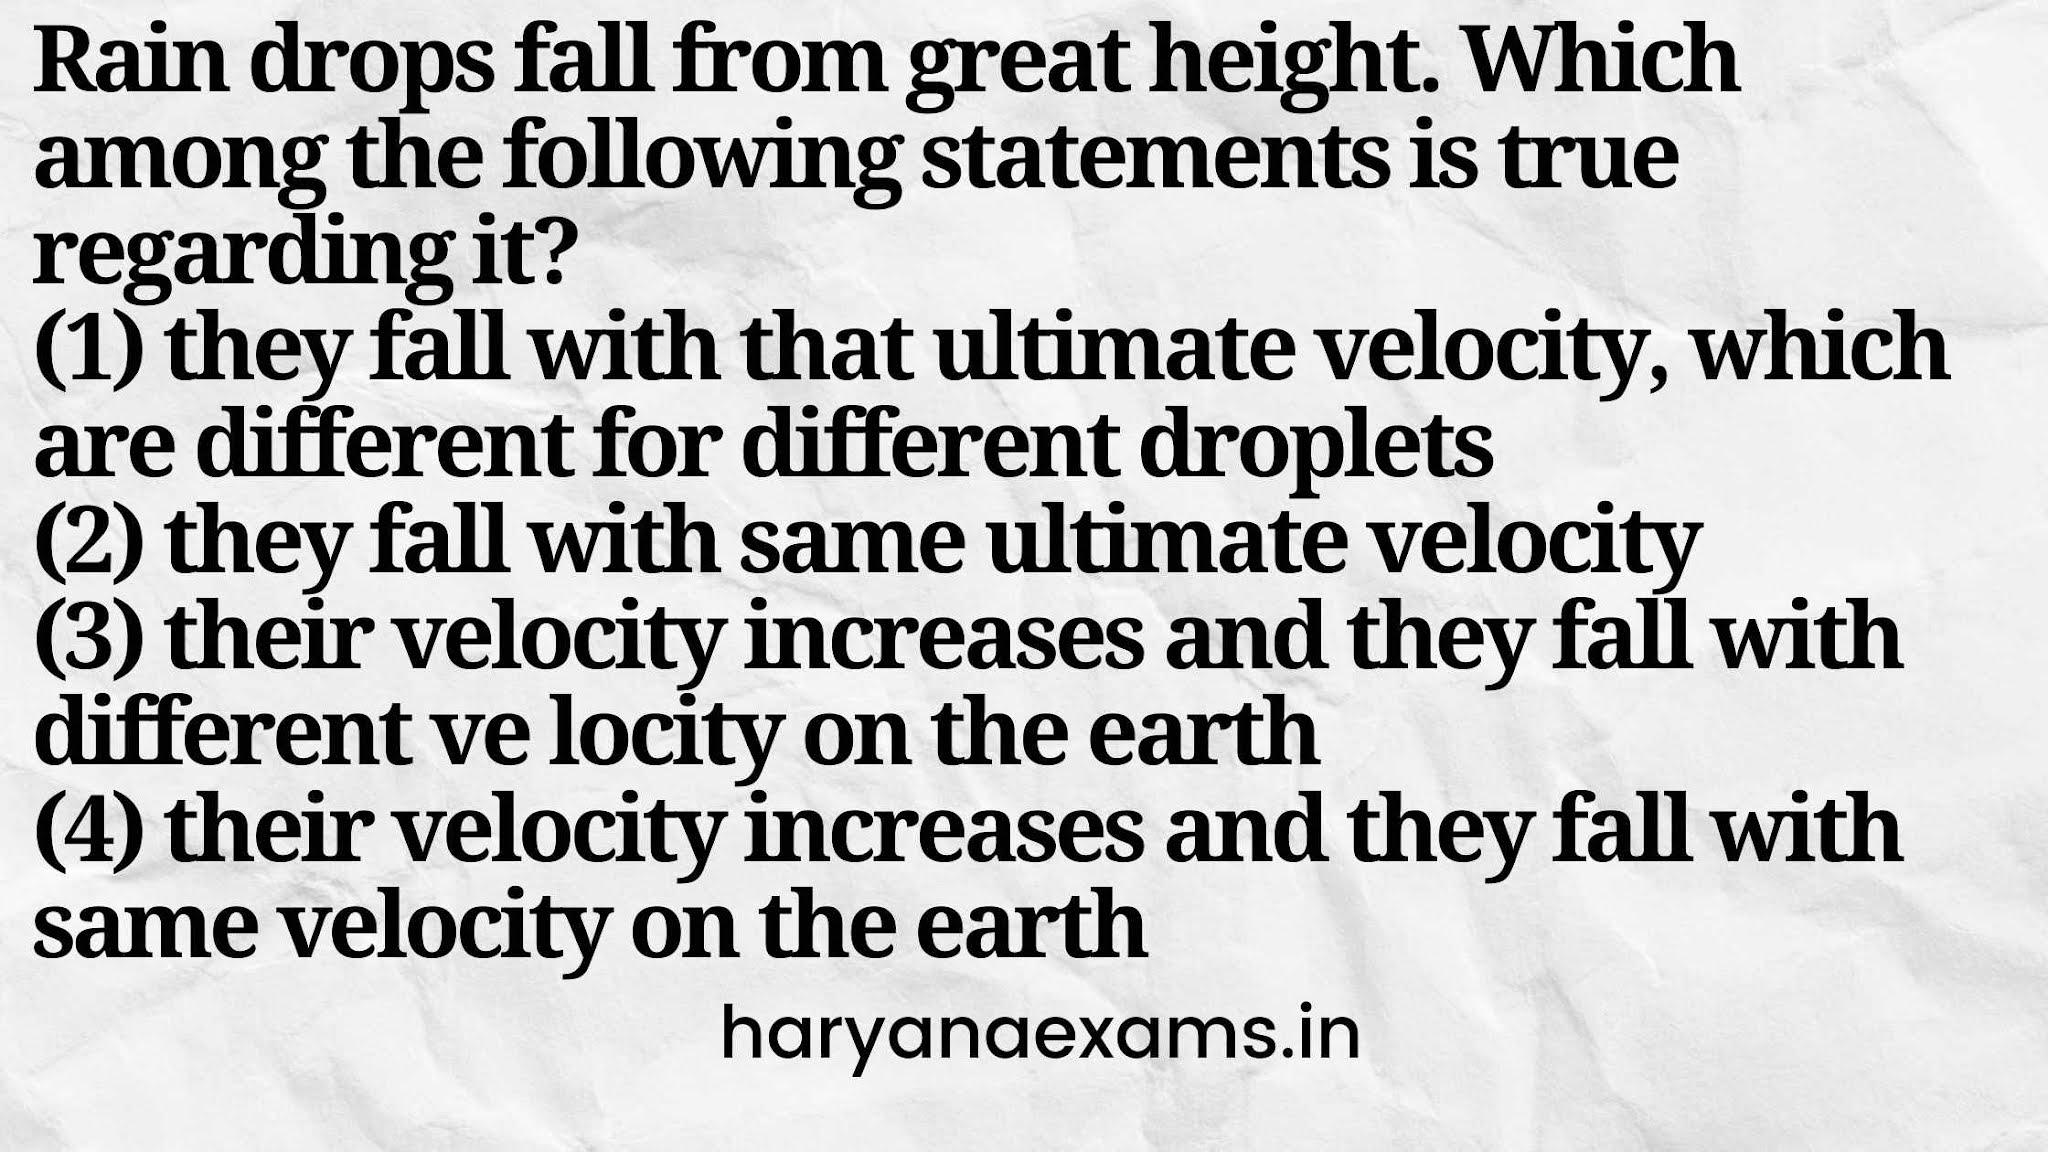 Rain drops fall from great height. Which among the following statements is true regarding it?   (1) they fall with that ultimate velocity, which are different for different droplets   (2) they fall with same ultimate velocity   (3) their velocity increases and they fall with different ve locity on the earth   (4) their velocity increases and they fall with same velocity on the earth